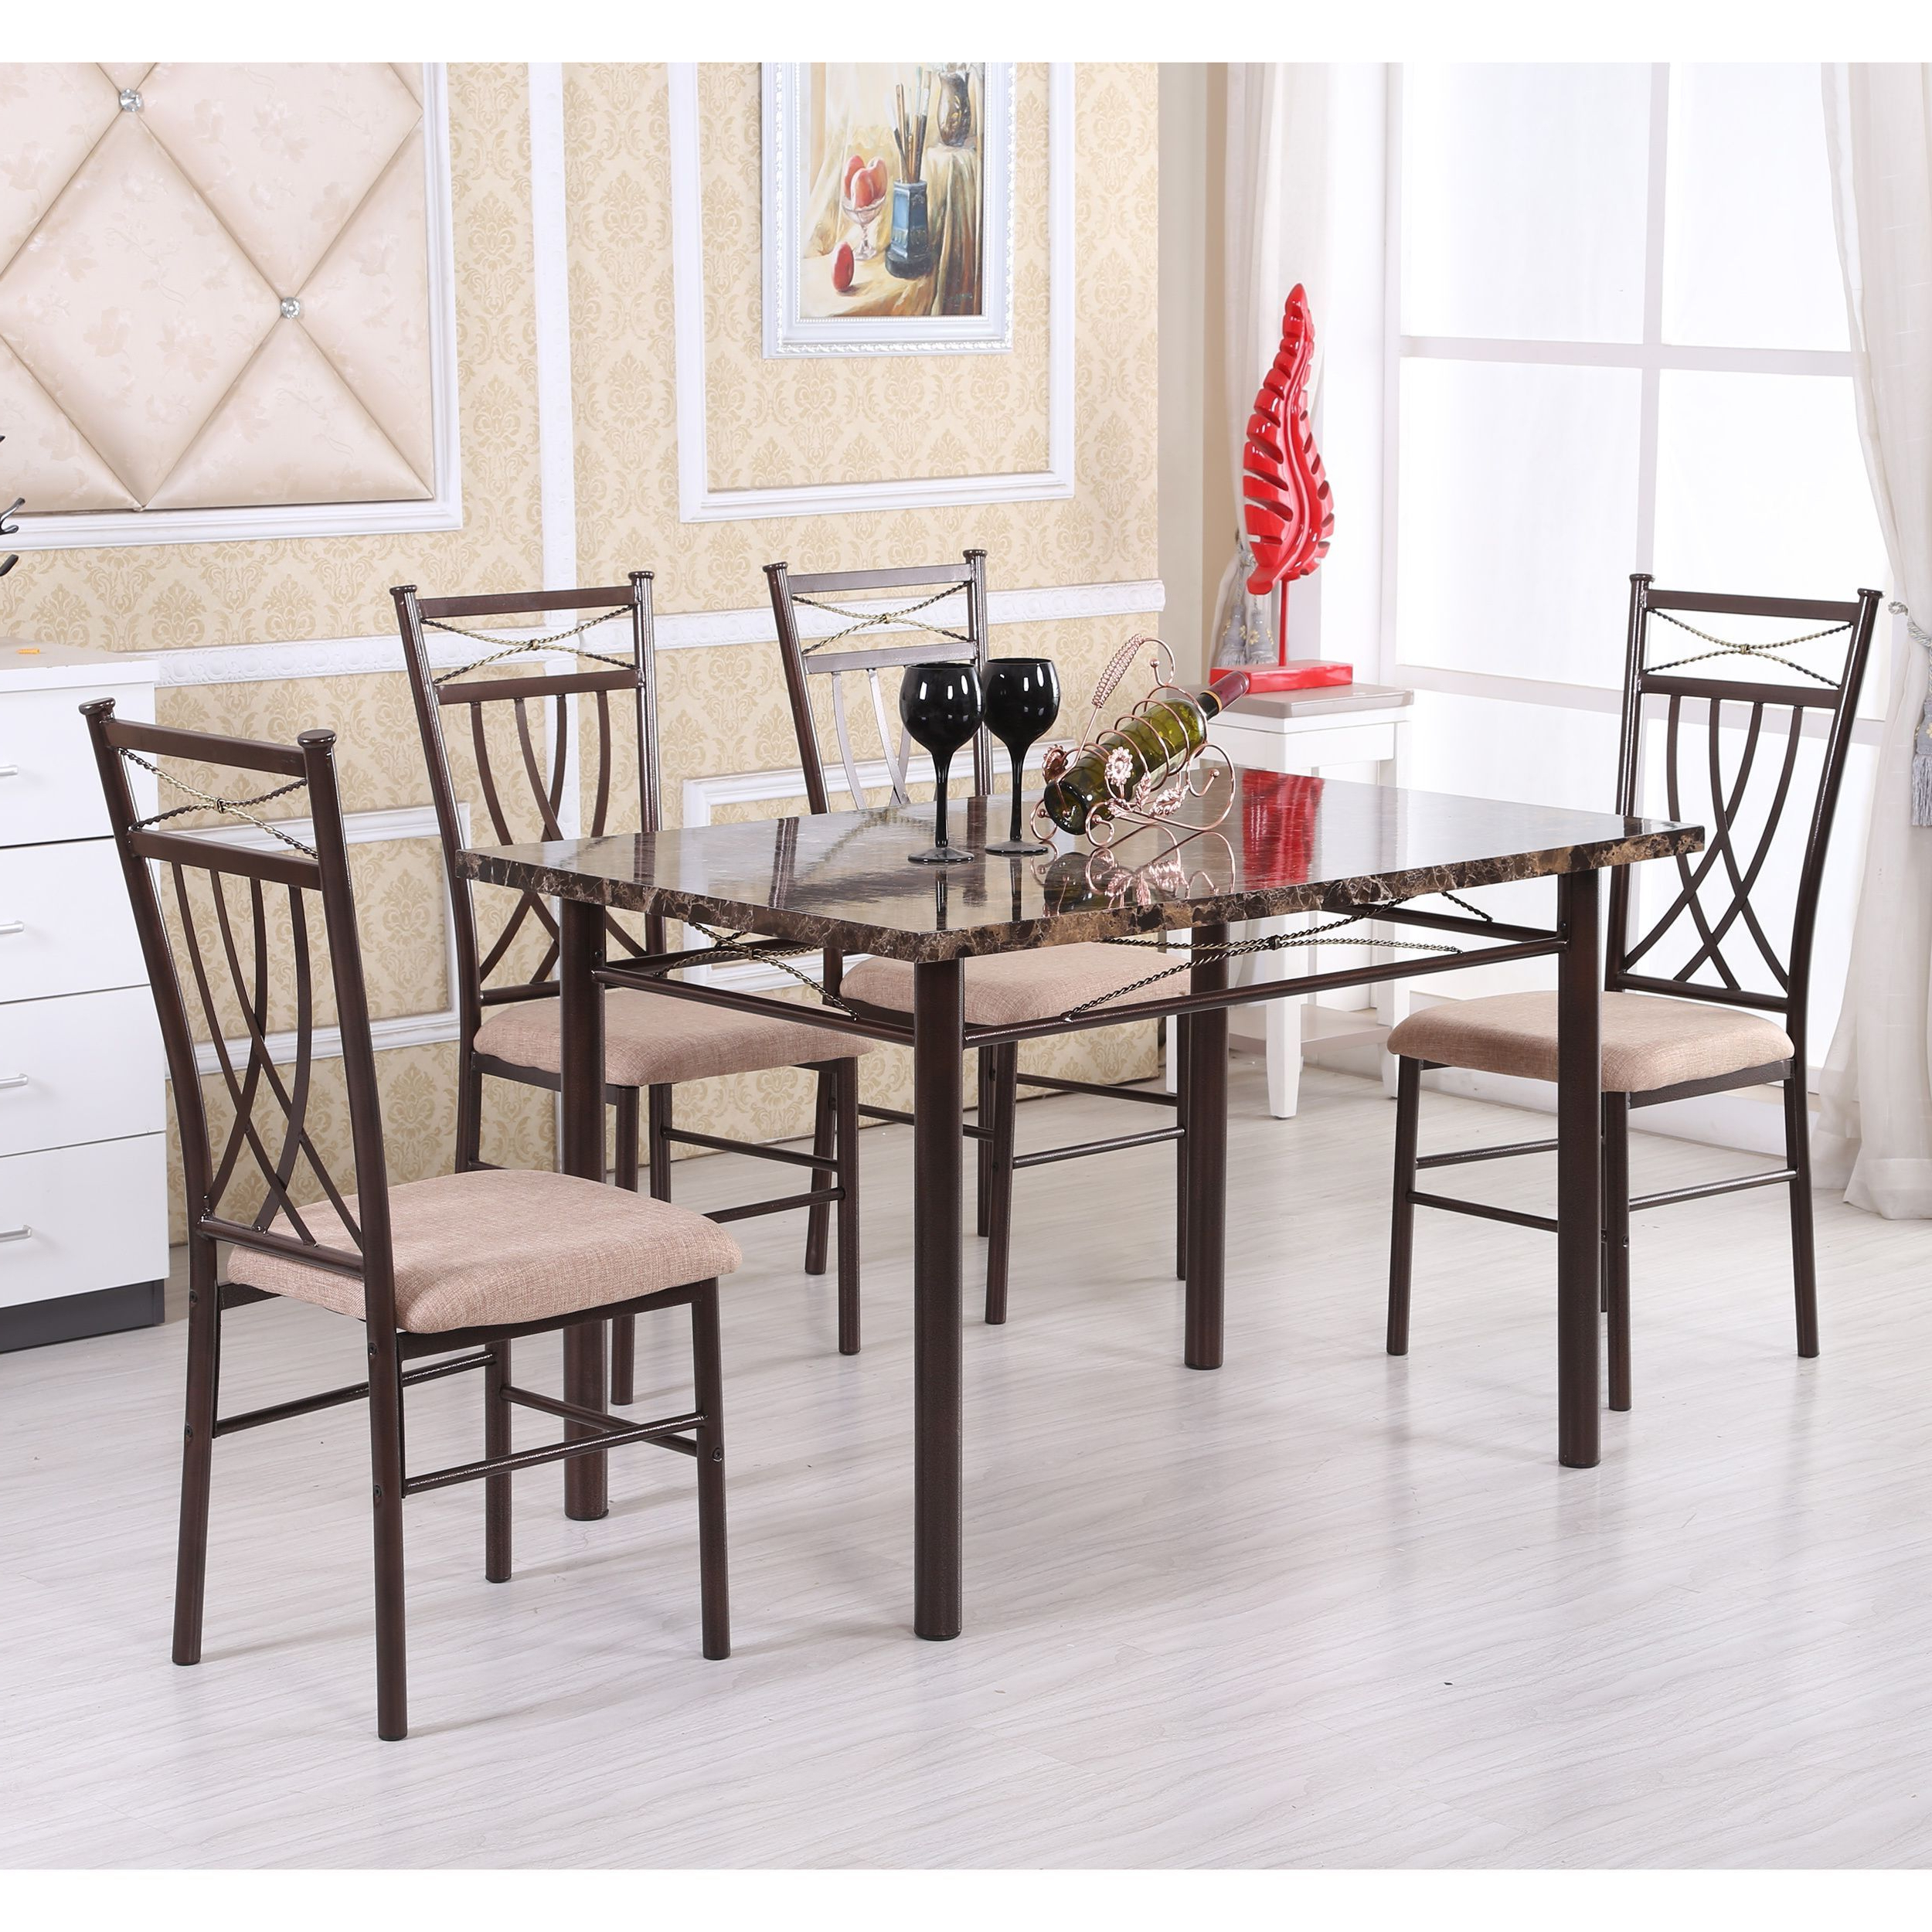 2020 Update Your Dining Room With This Classic Five Piece Dining Set Intended For Kieffer 5 Piece Dining Sets (View 5 of 25)